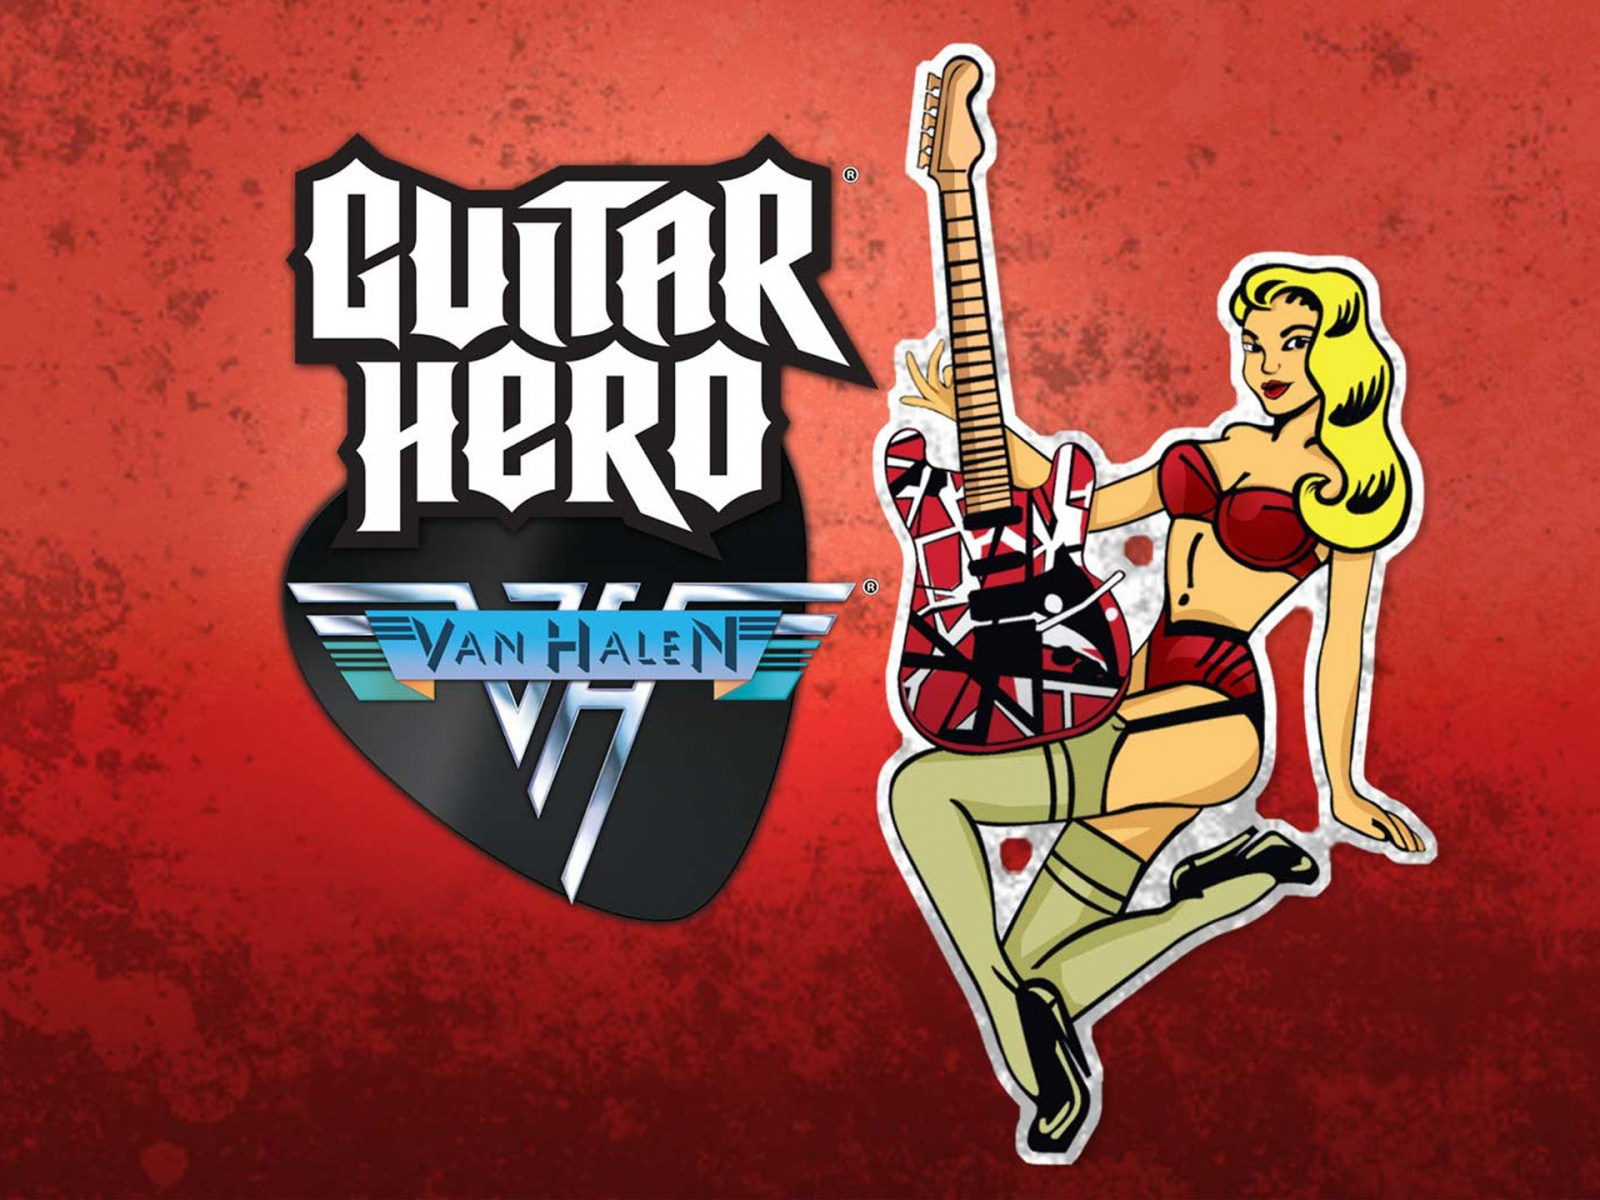 Guitar hero wallpaper and background image 1600x1200 id 246558 wallpaper abyss - Guitar hero 3 hd ...